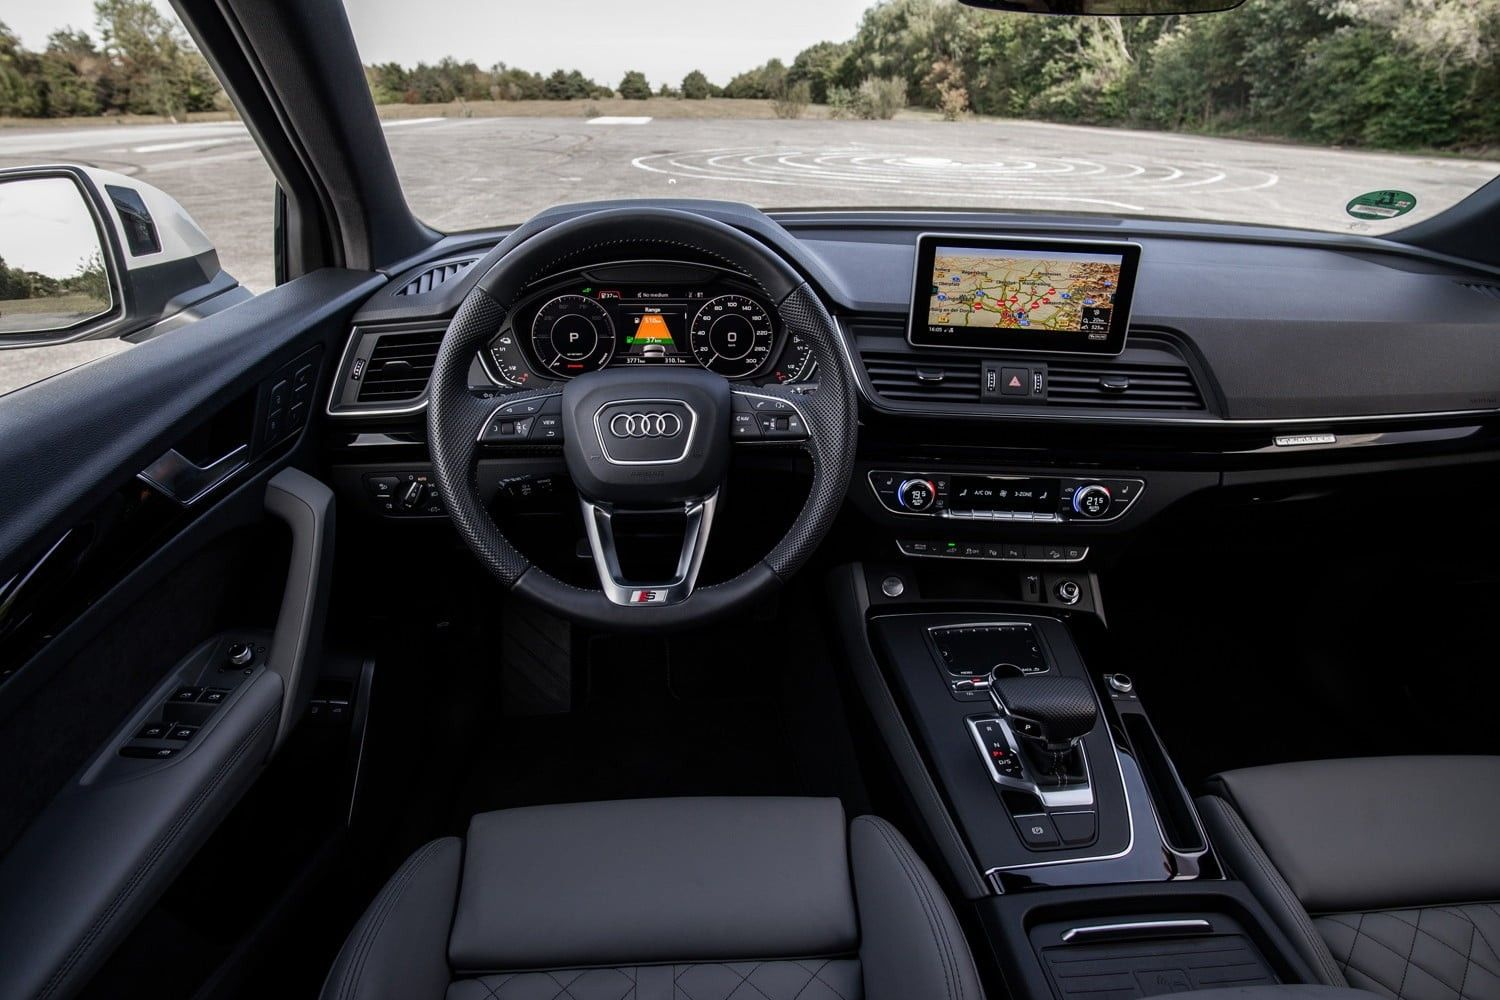 When Does The 2020 Audi Q5 Come Out Redesign In 2020 Audi Q5 Best Suv New Suv